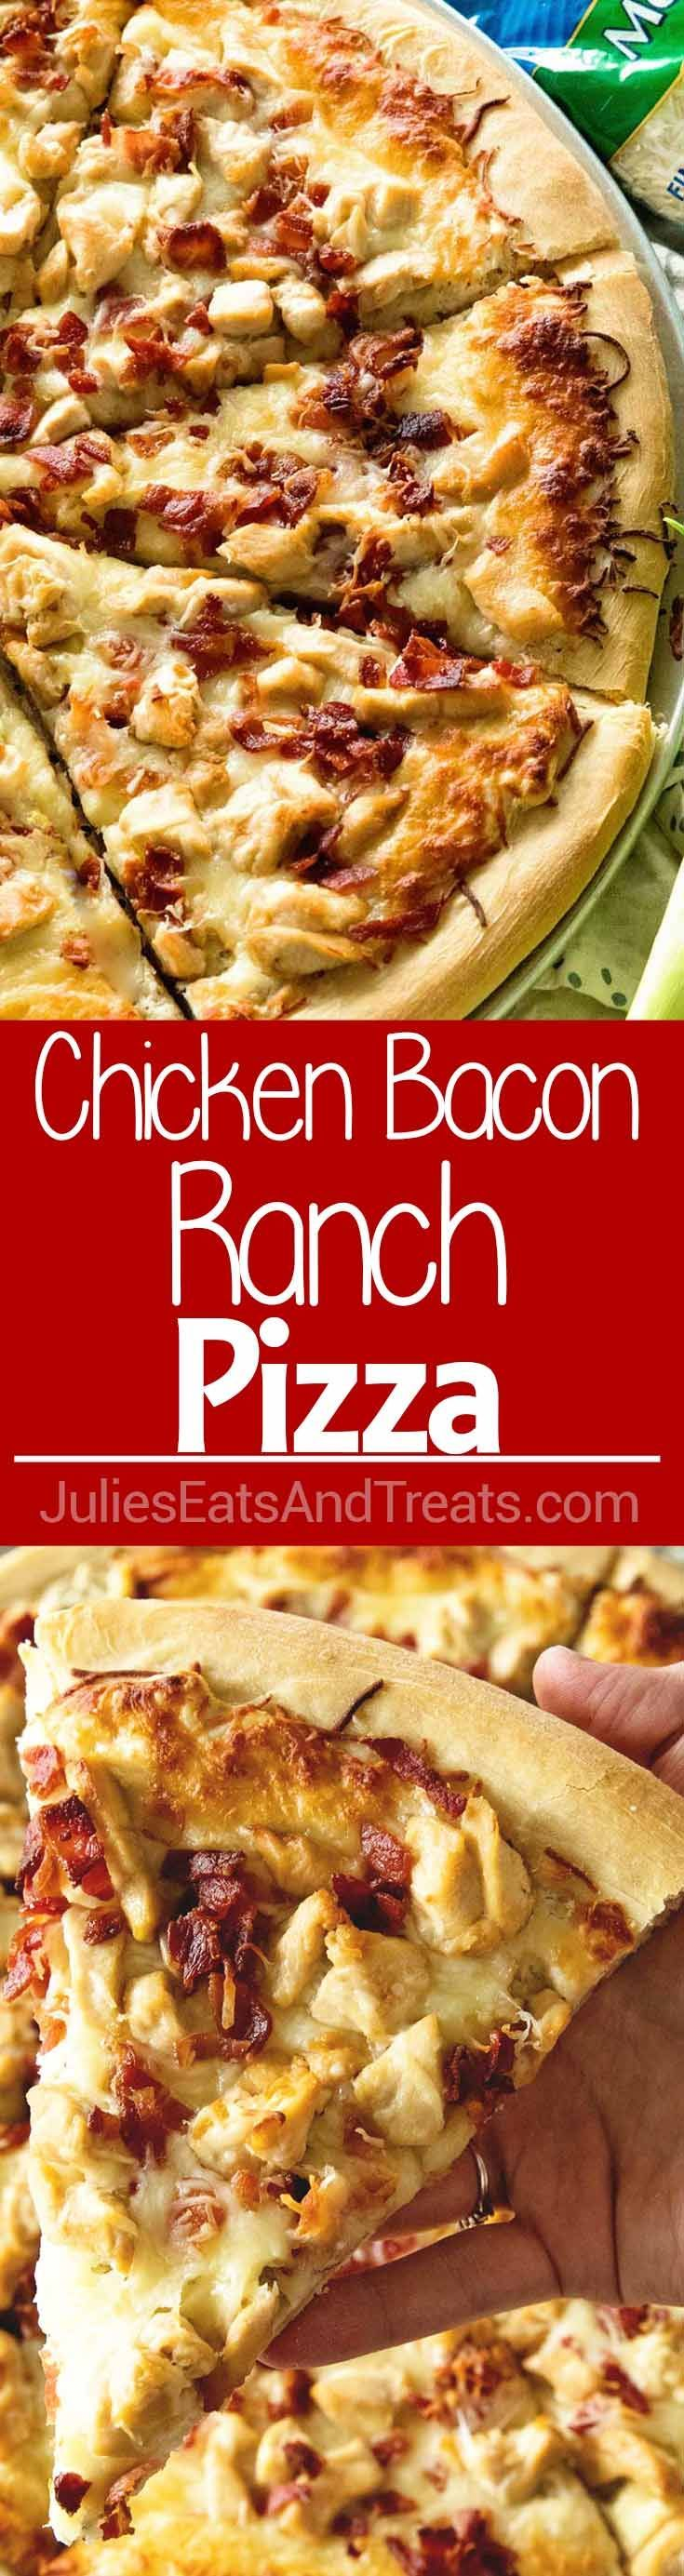 Chicken Bacon Ranch Pizza ~ Delicious Homemade Pizza Piled with a Creamy Ranch Sauce, Chicken, Bacon and Cheese! Perfect for Pizza Nights at Home! ~ http://www.julieseatsandtreats.com  #CrystalFarmsCheese #CheeseLove #ad @Crystal_Farms